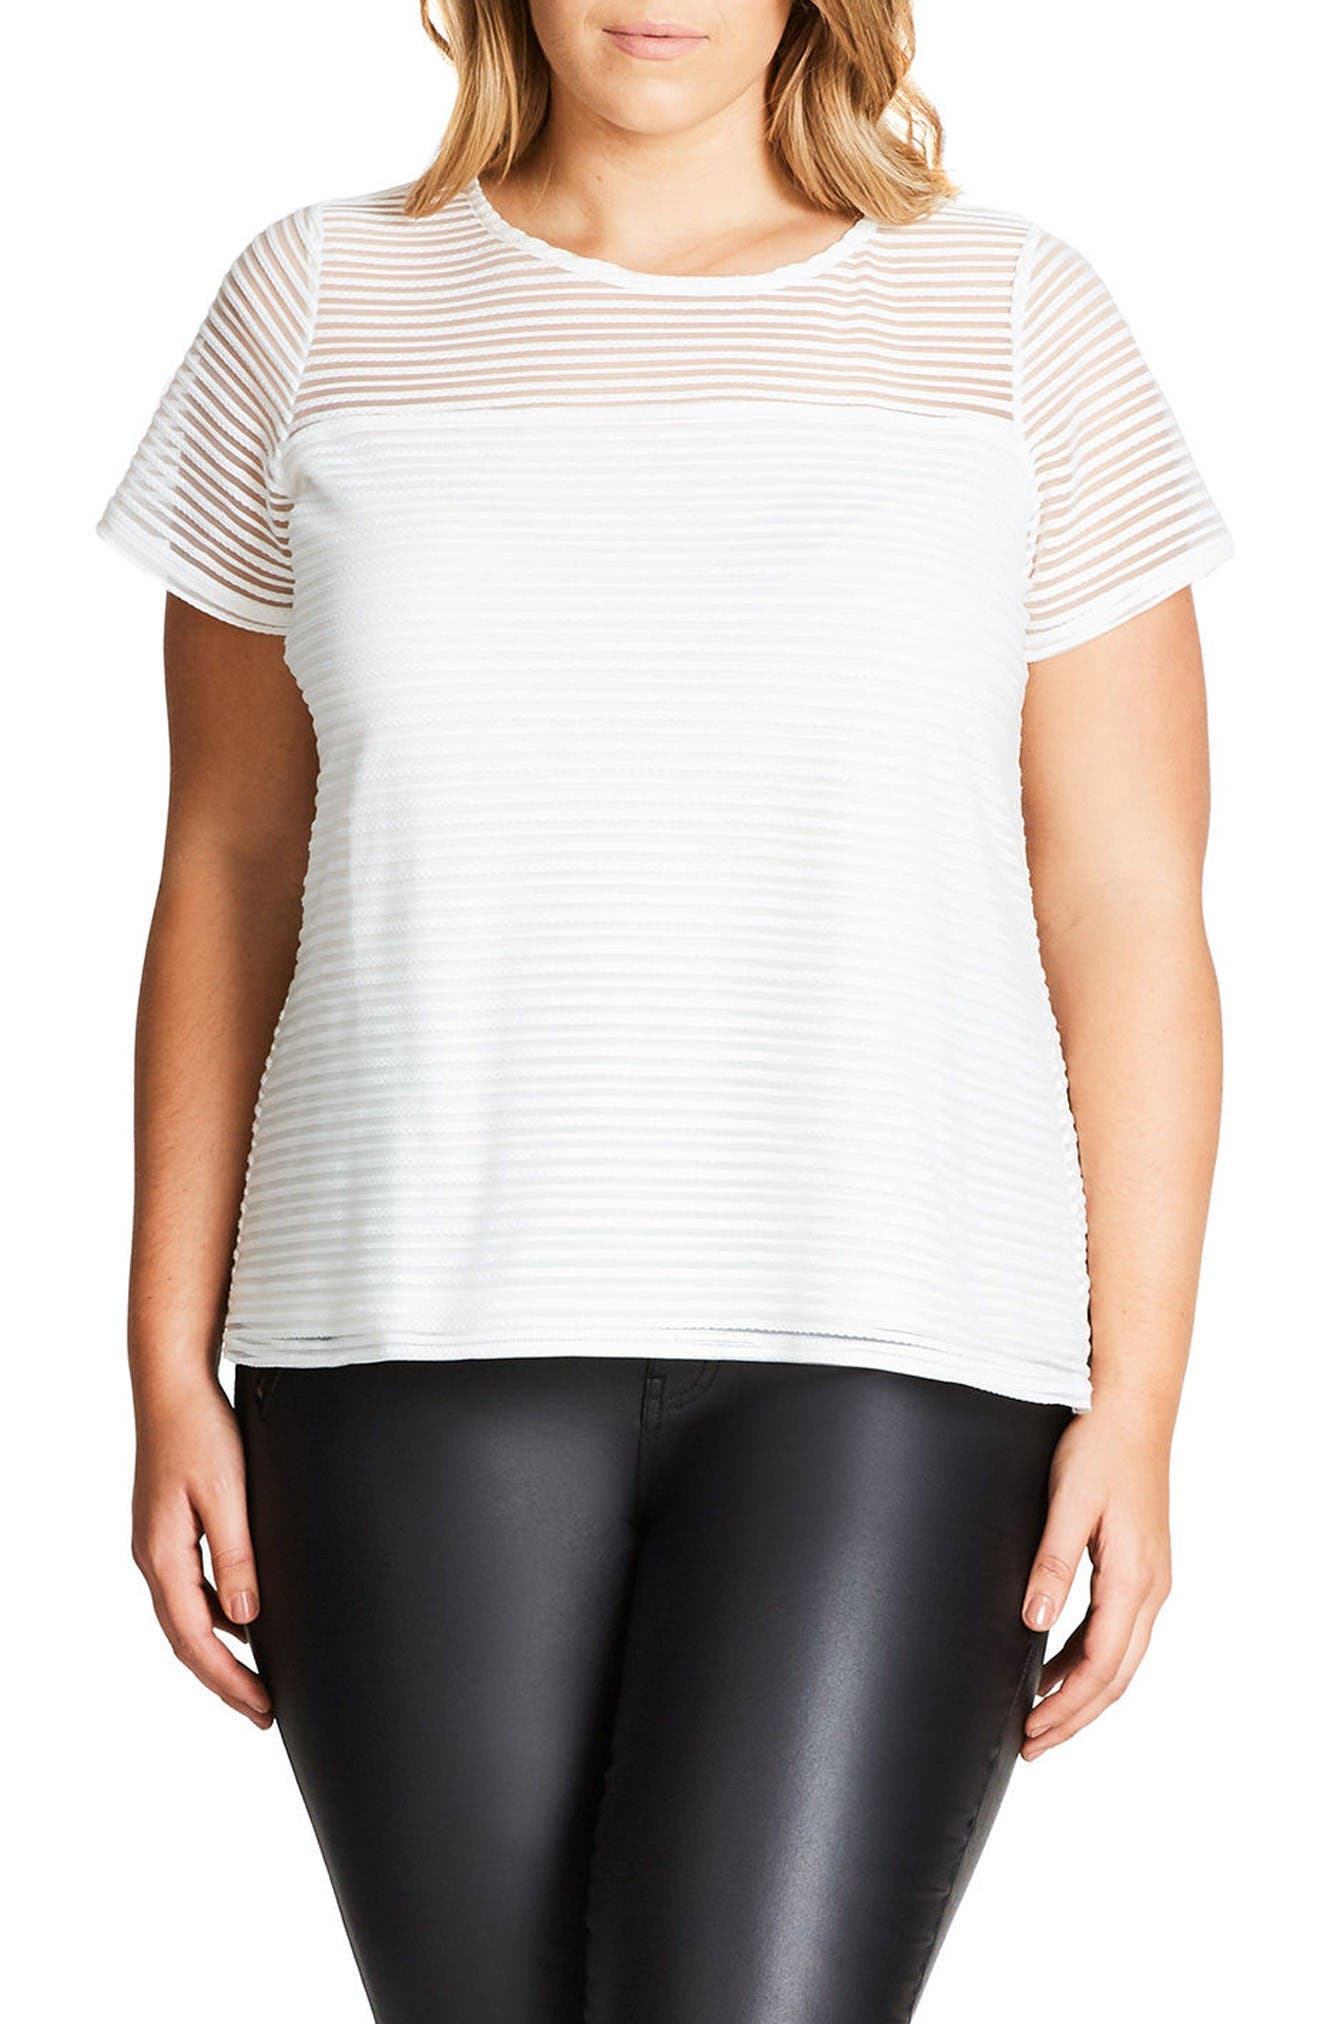 Main Image - City Chic Shadow Heart Top (Plus Size)